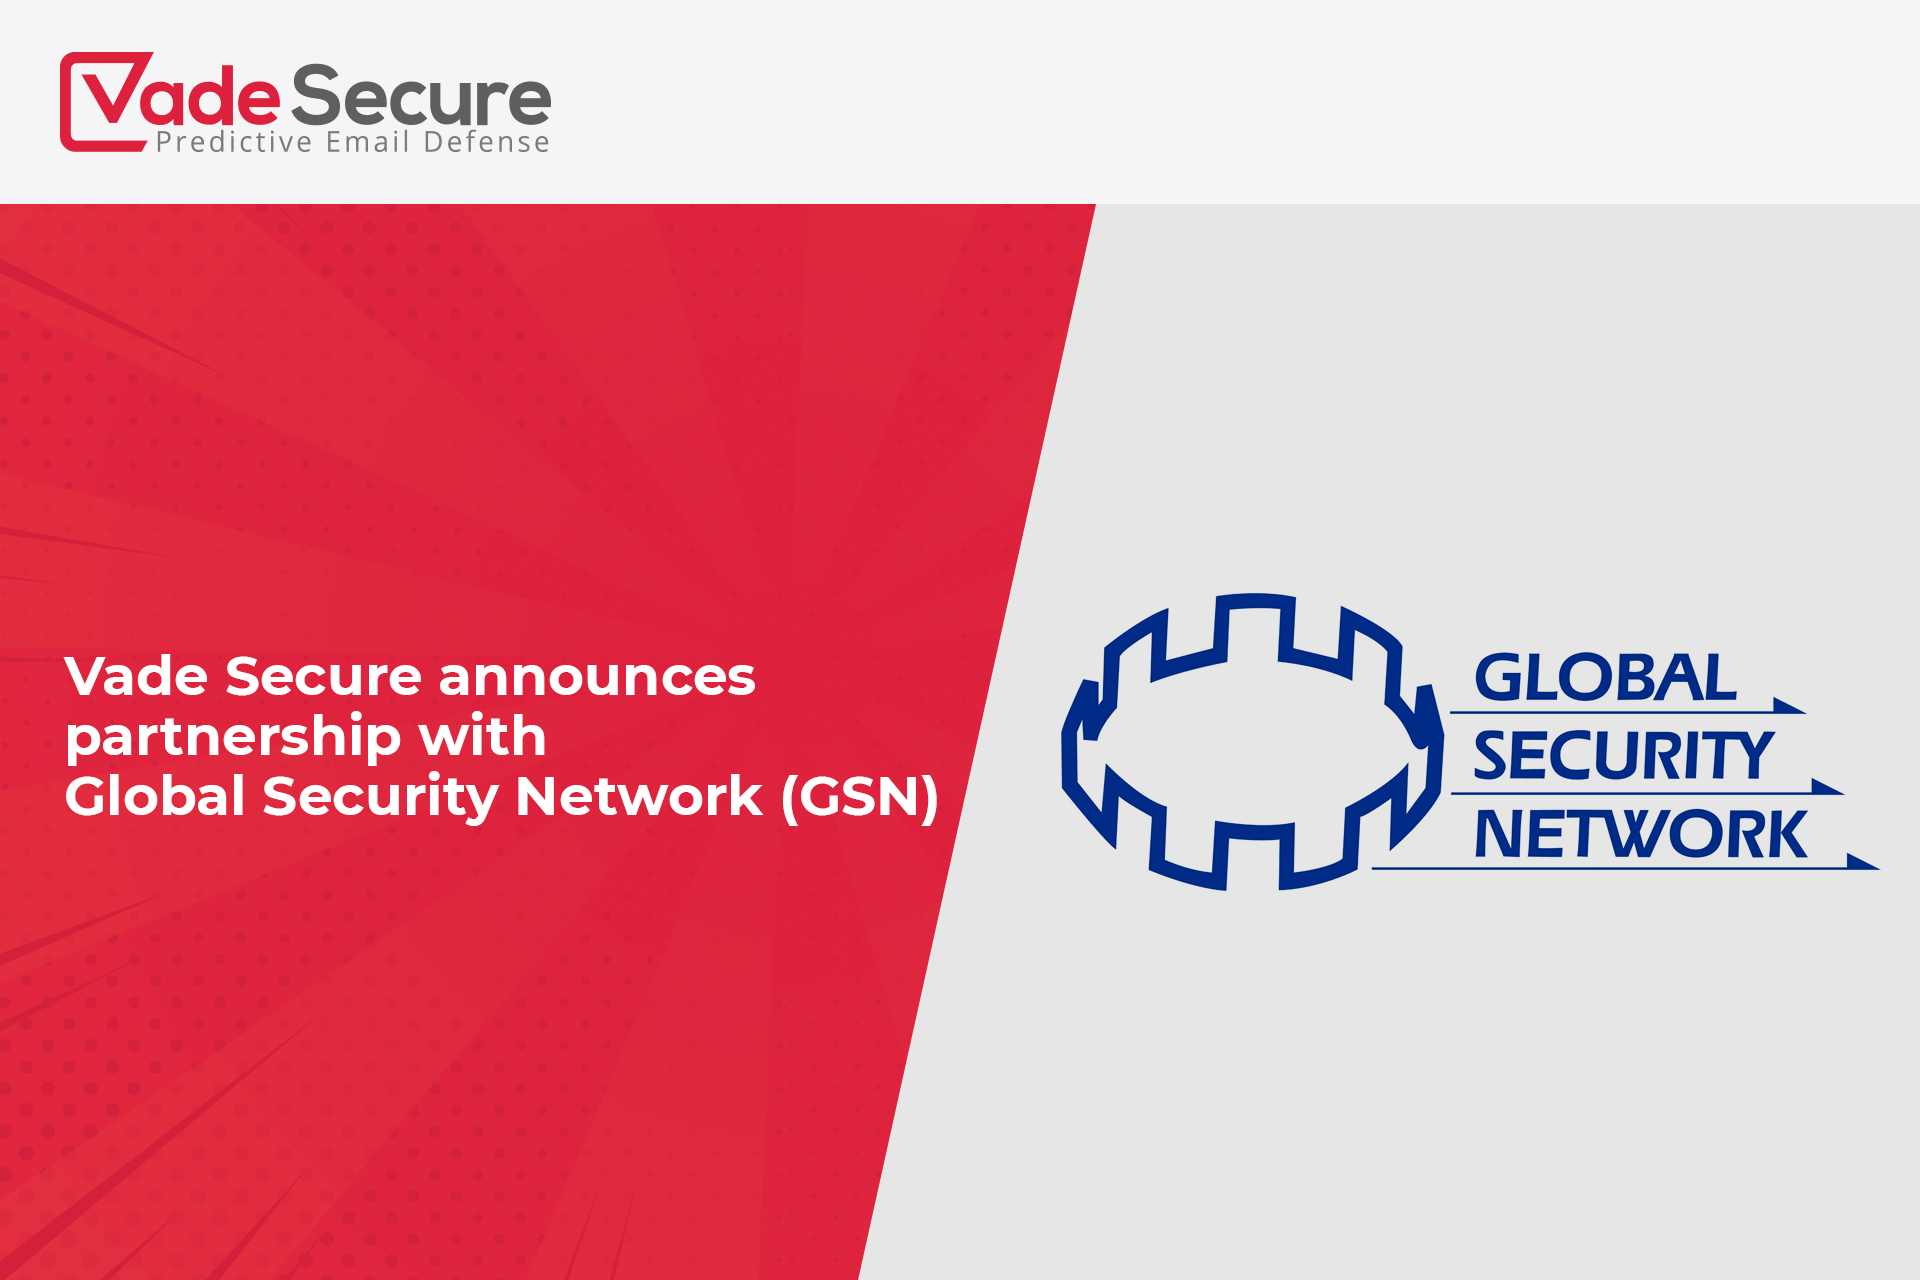 Vade Secure announces partnership with Global Security Network (GSN)